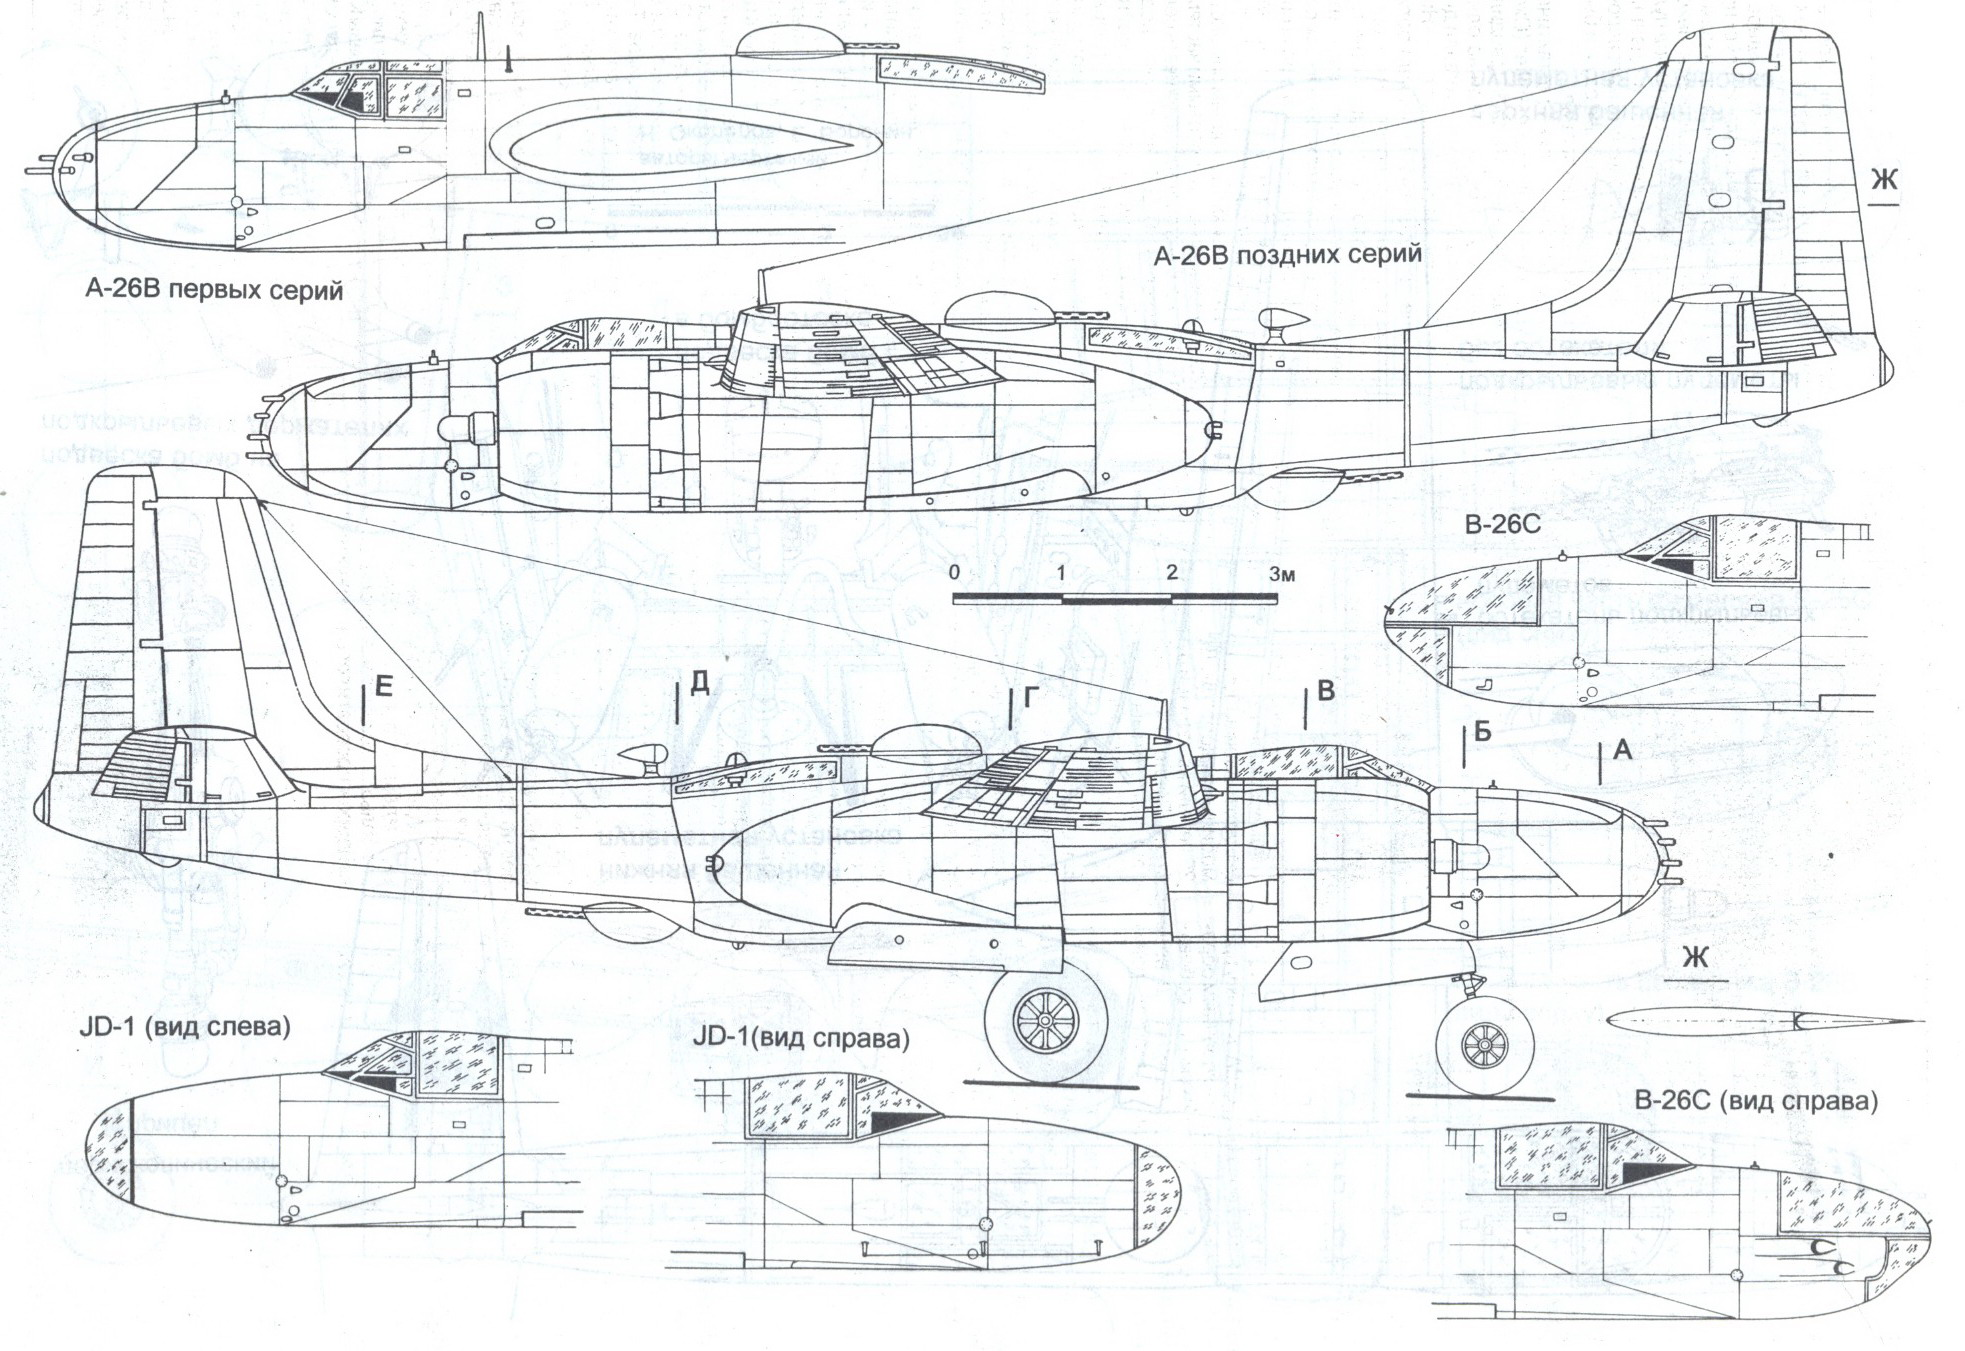 B-26 Marauder blueprint